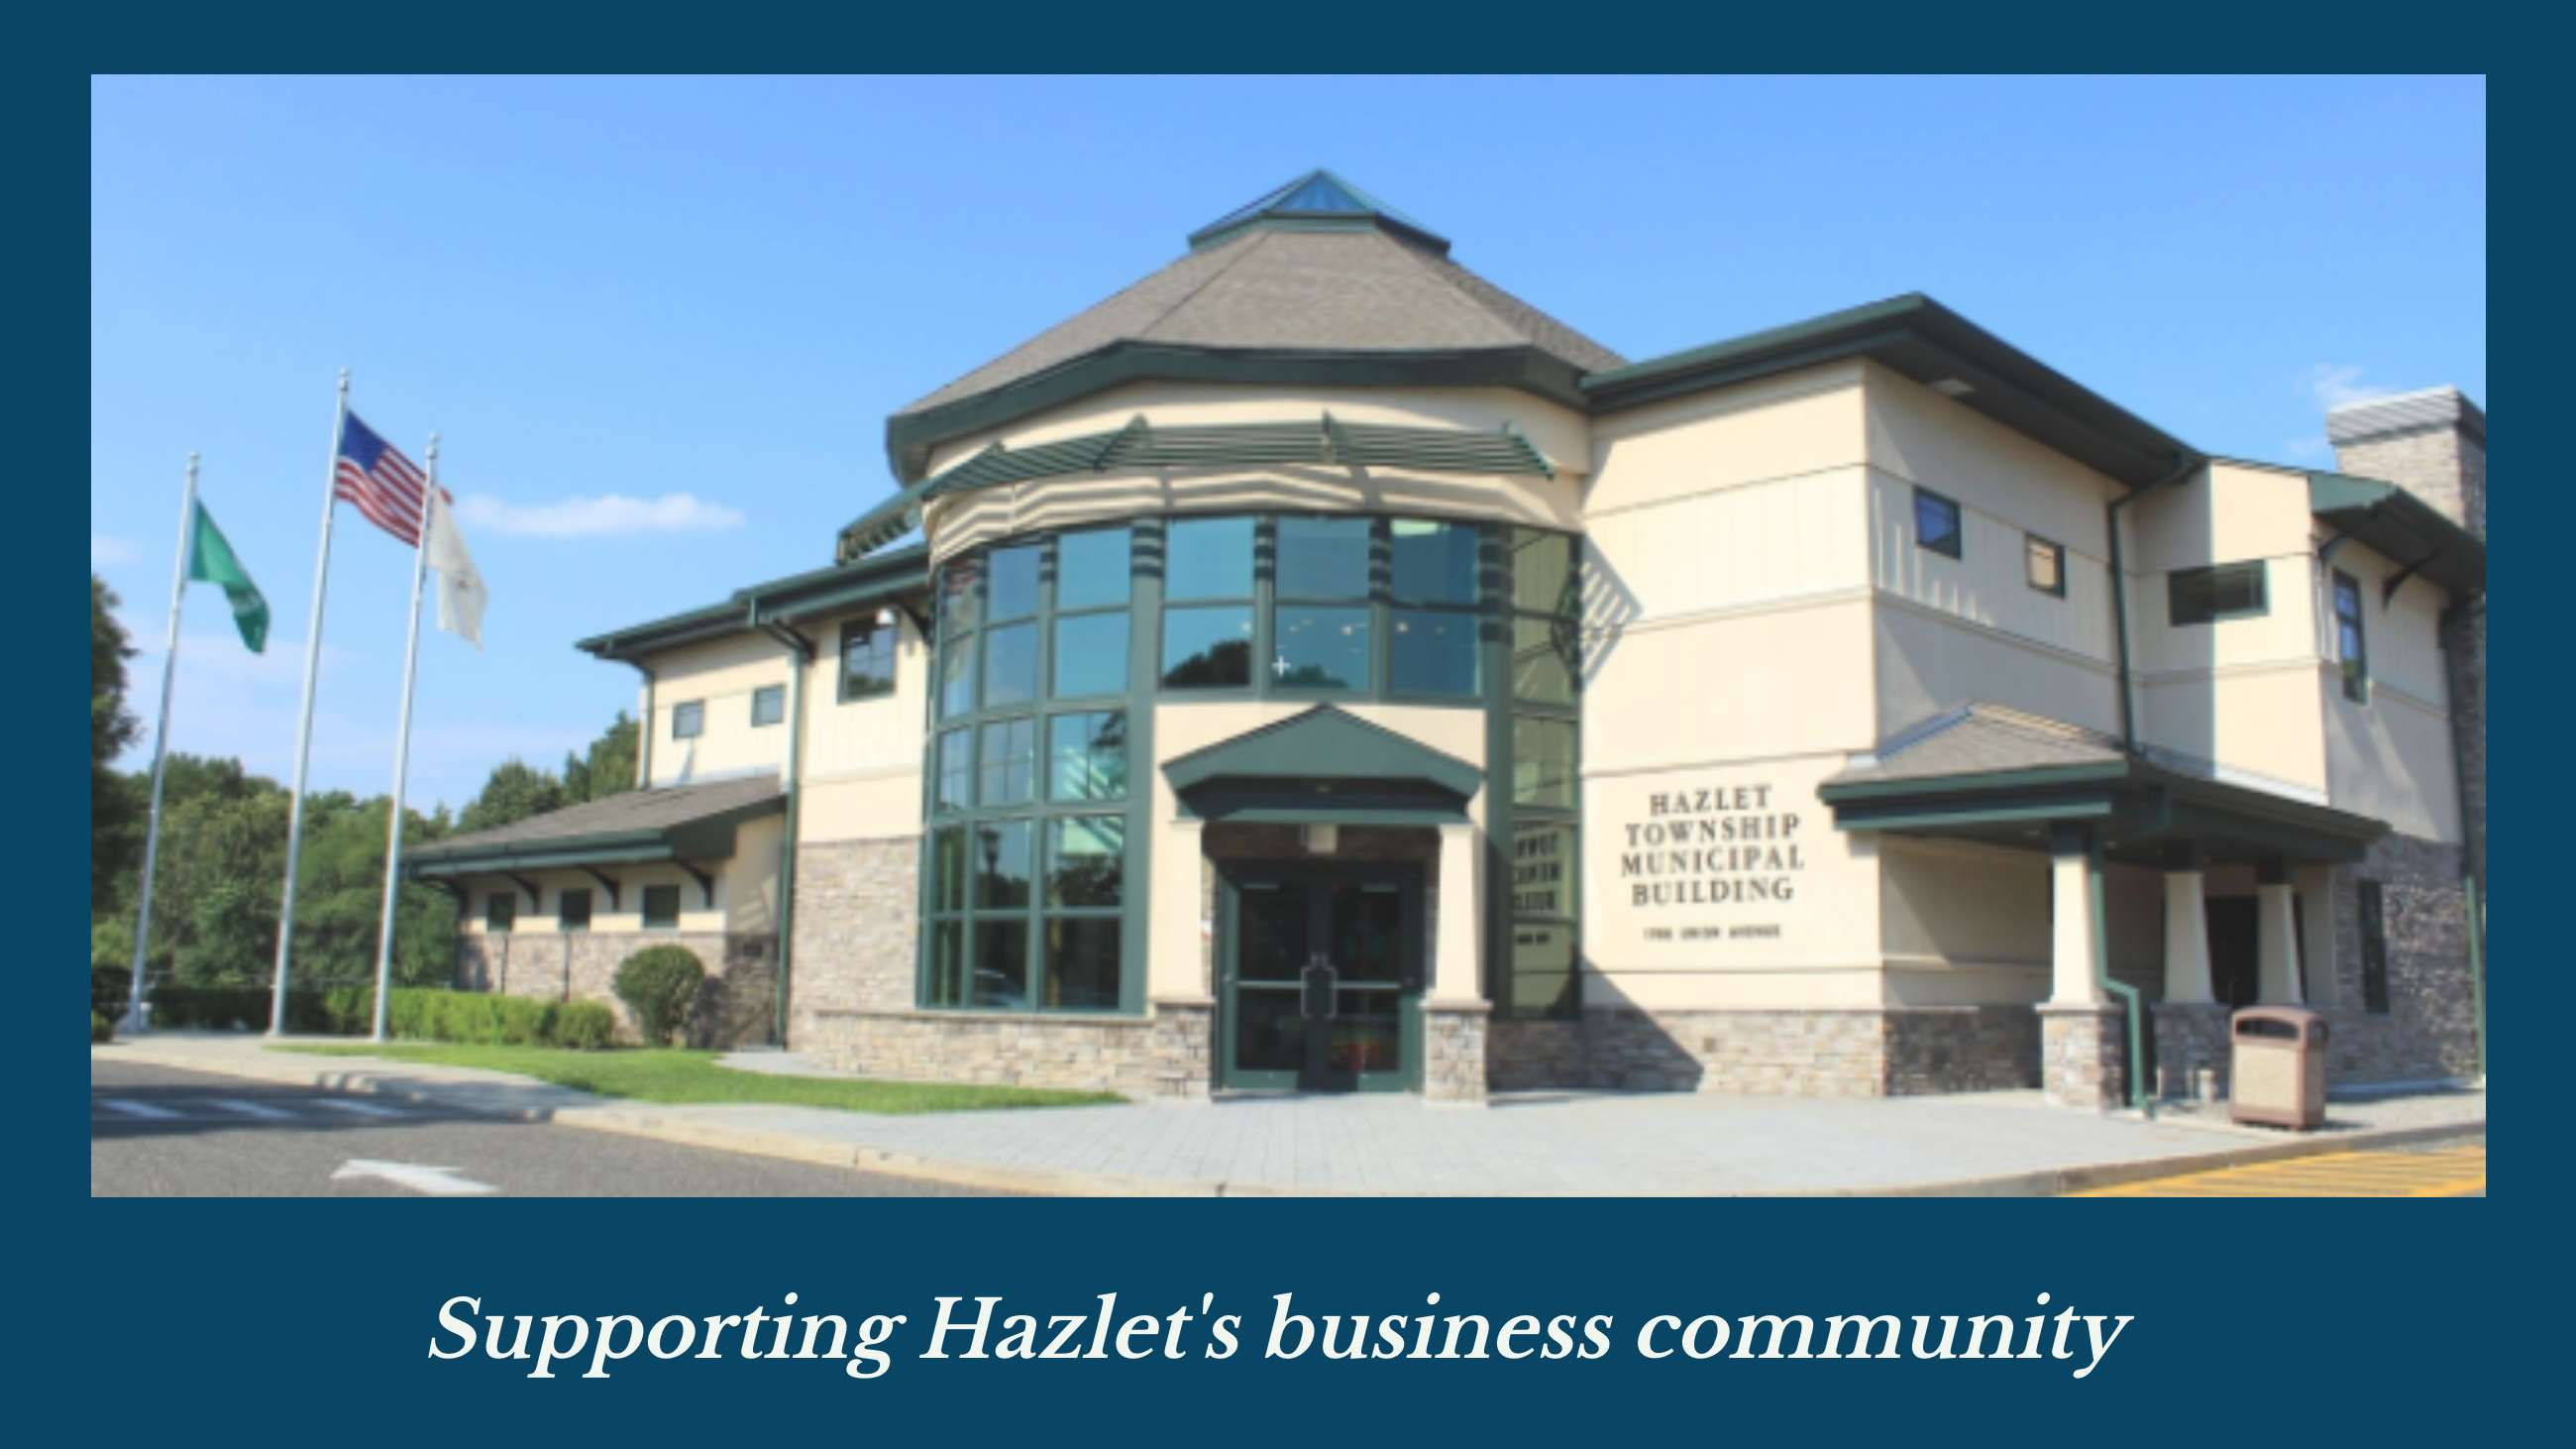 Supporting Hazlet's Business Community